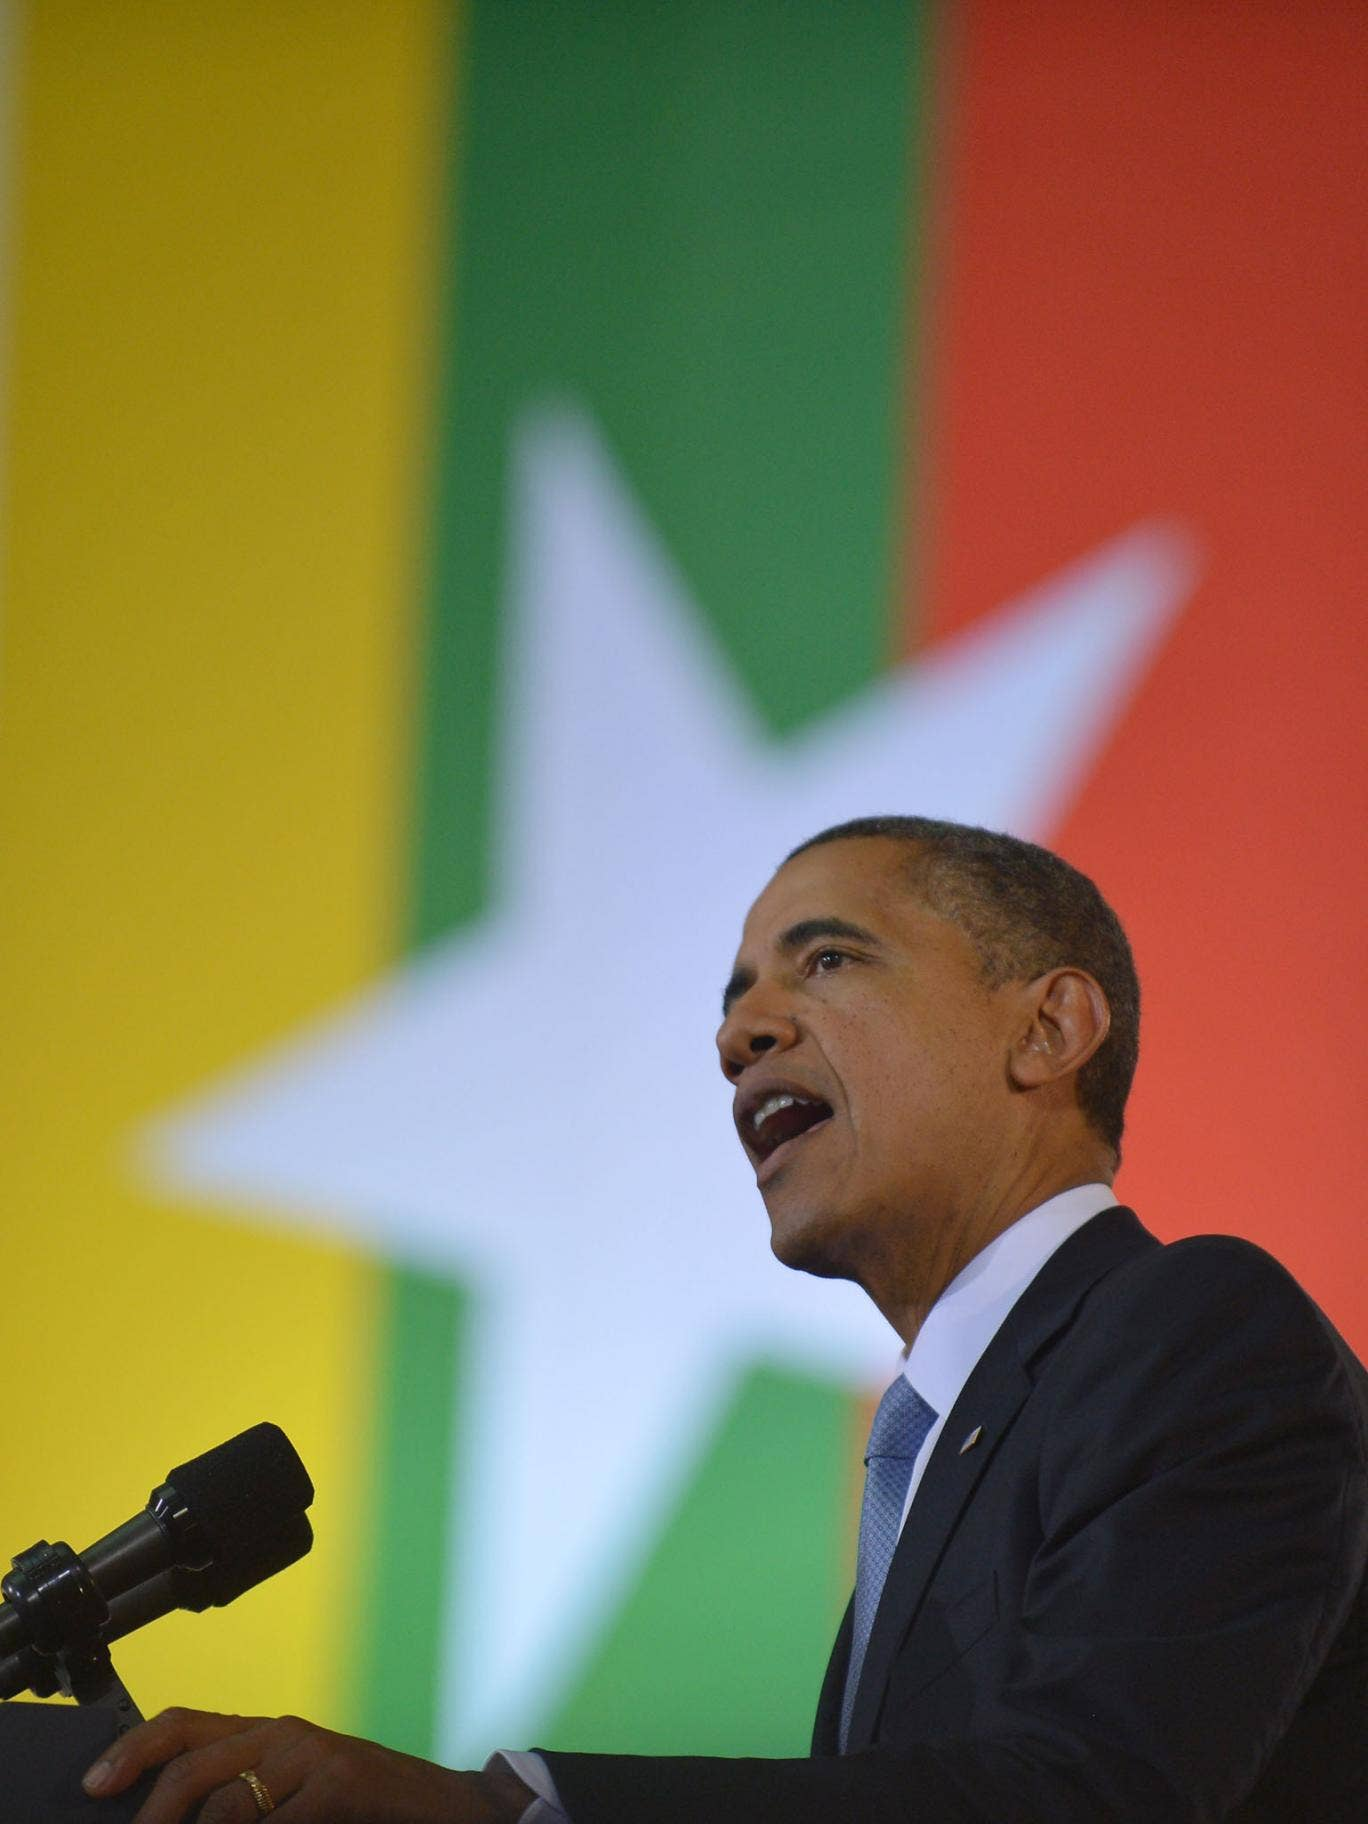 US President Barack Obama speaks at the University of Yangon in Yangon on November 19, 2012. Huge crowds greeted Barack Obama in Myanmar on the first visit by a serving US president to the former pariah state to encourage a string of startling political r